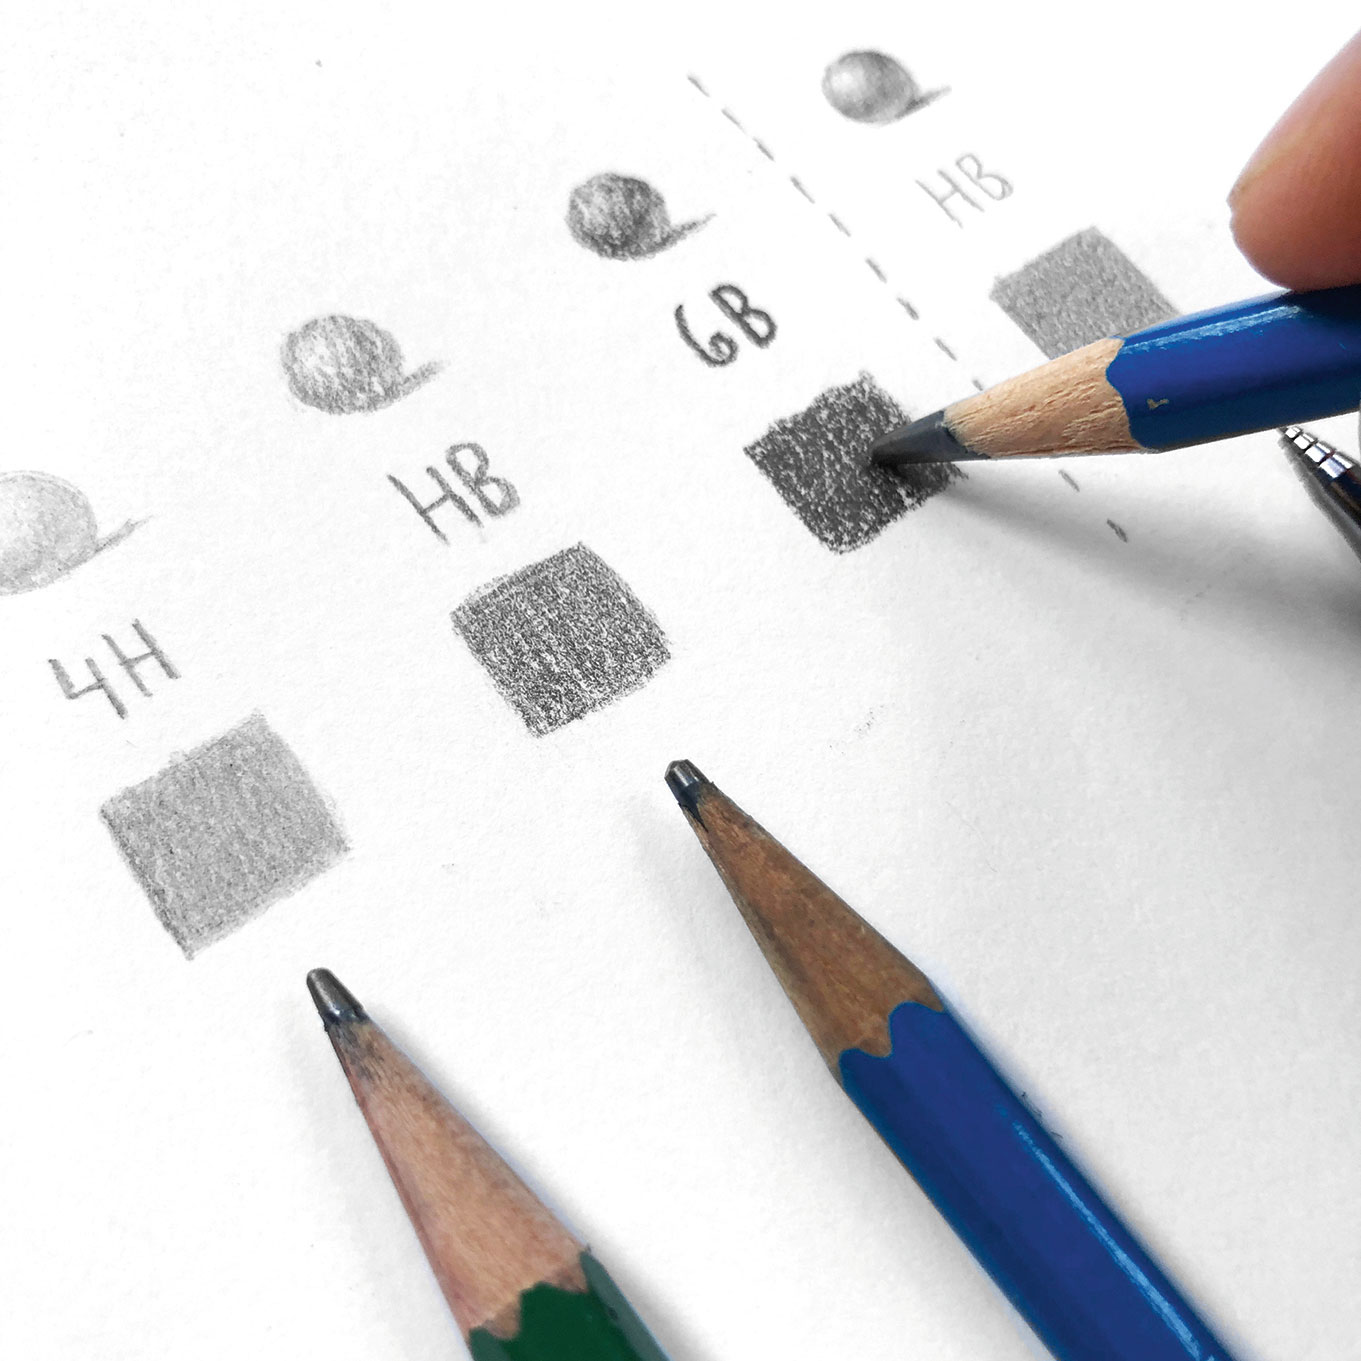 Pencil Shading Techniques 5 Expert Tips Laptrinhx